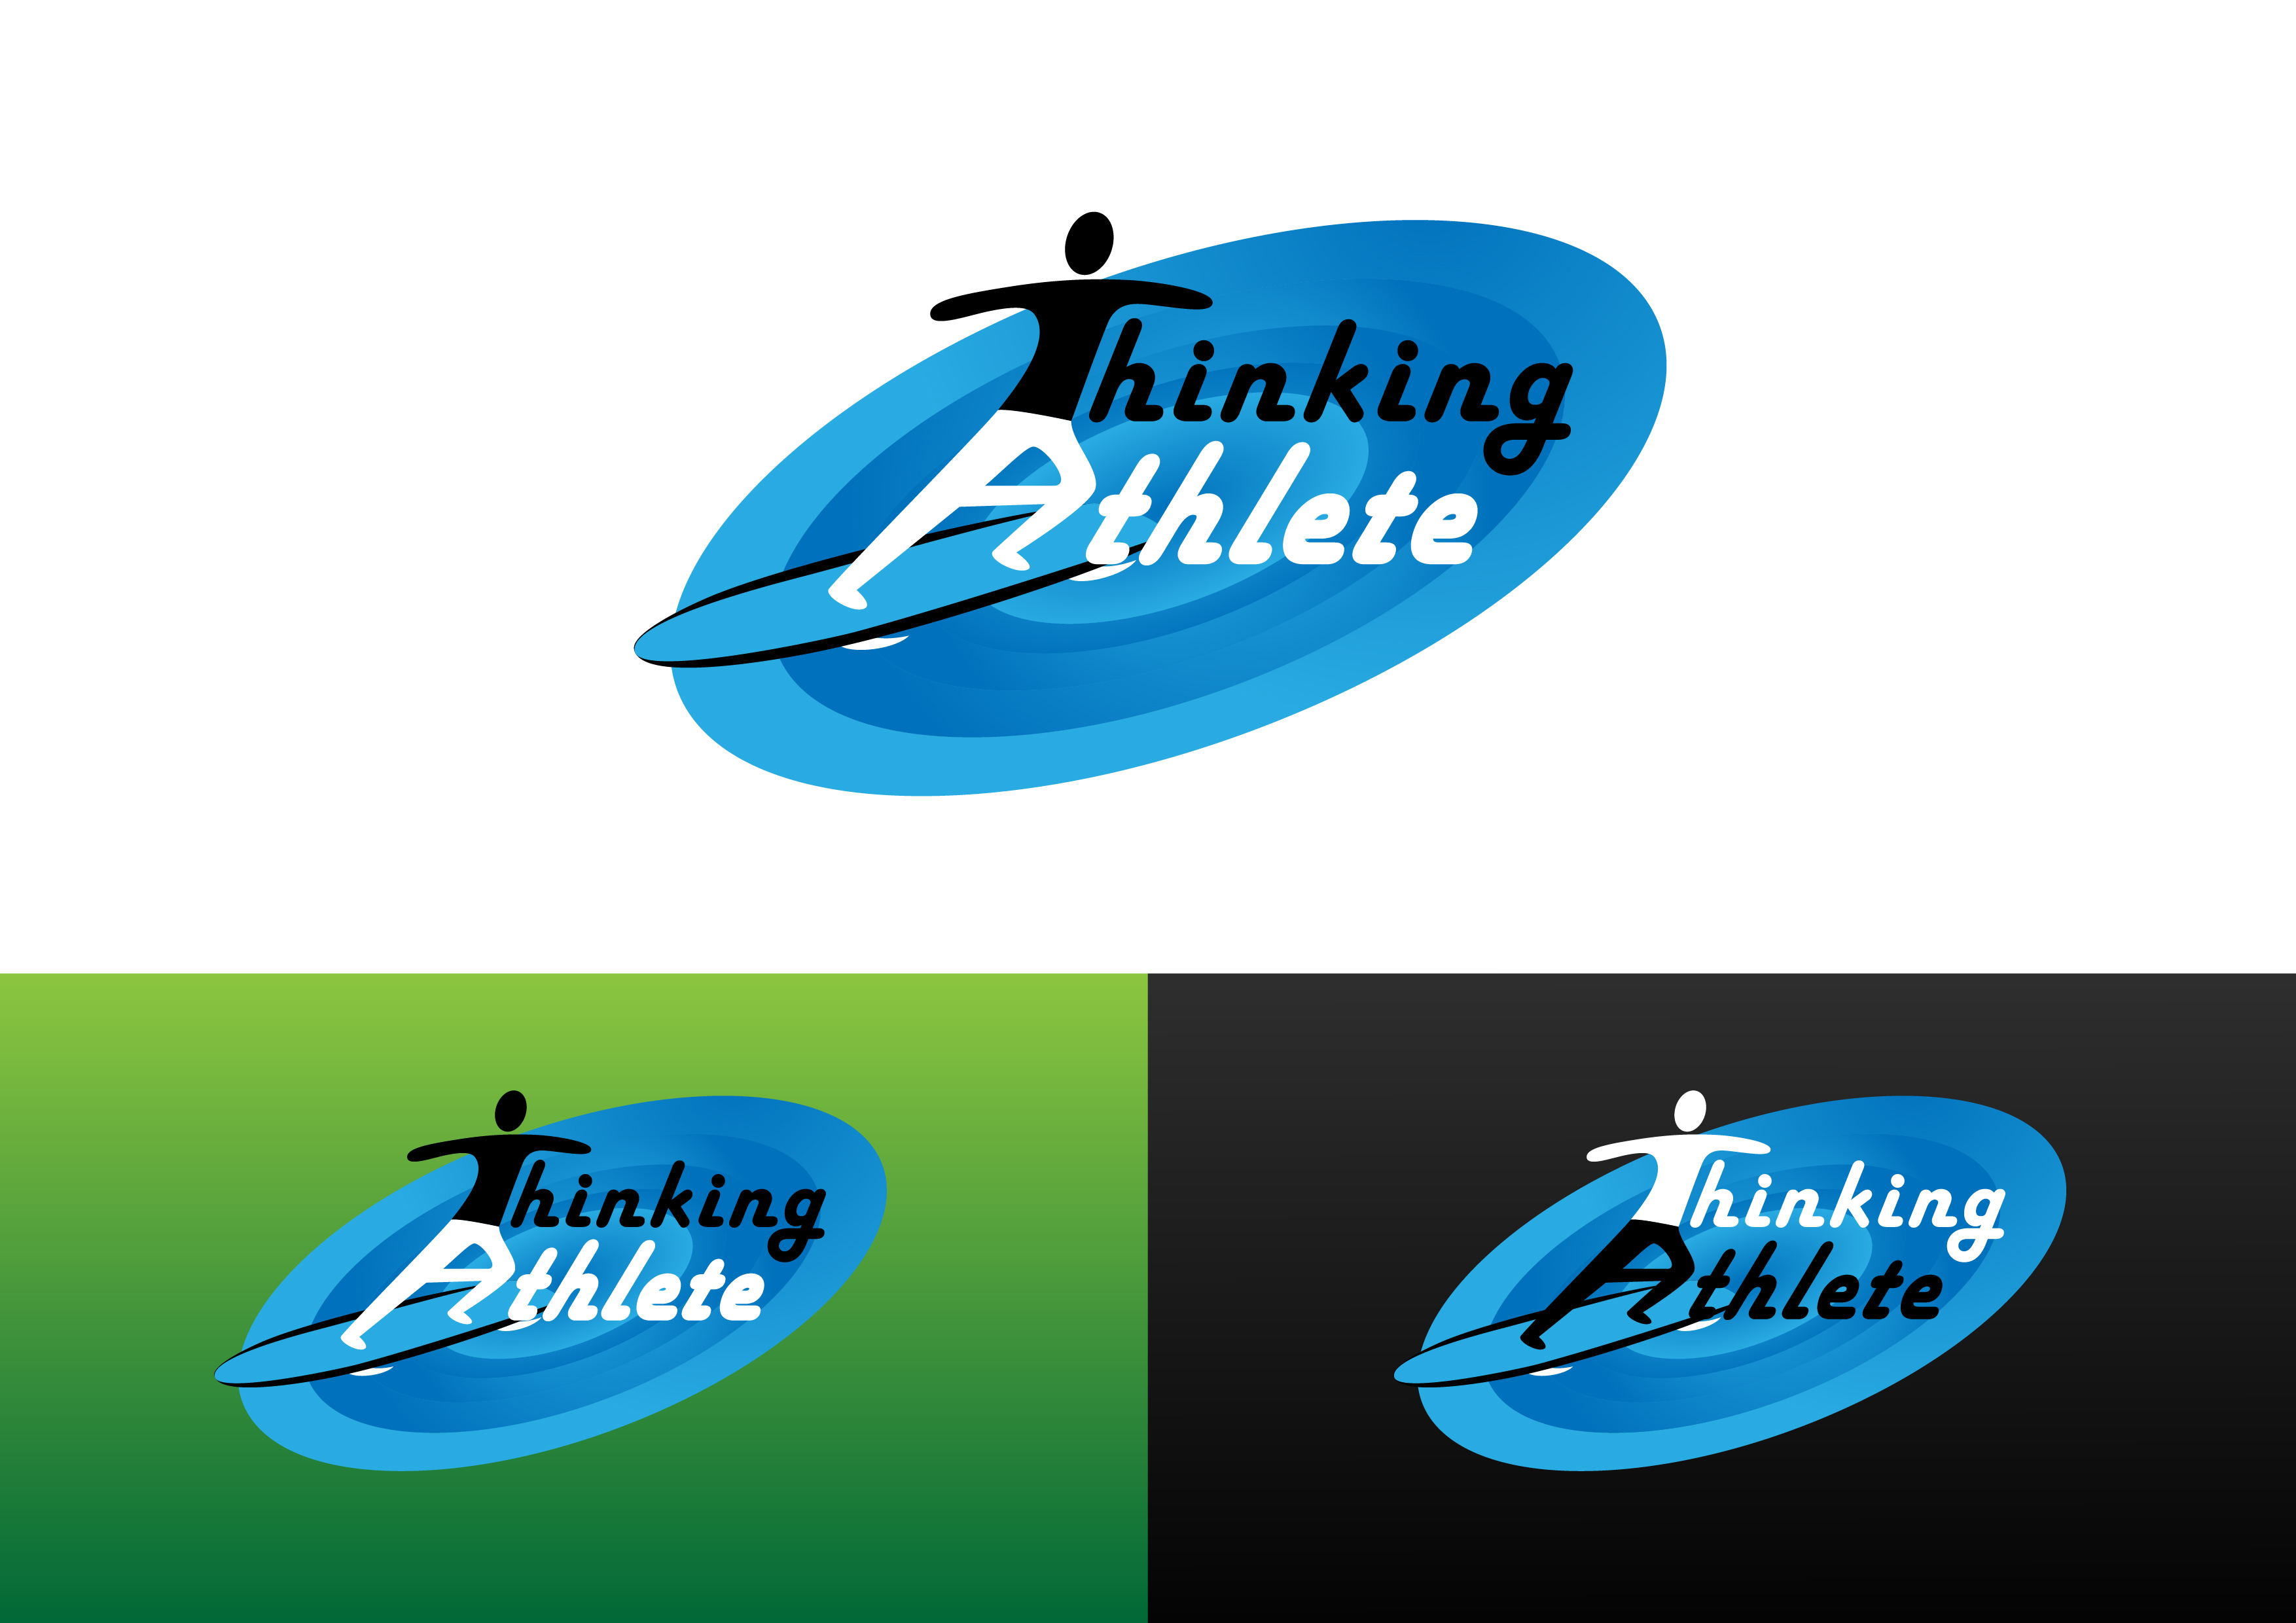 Logo Design by 3draw - Entry No. 12 in the Logo Design Contest Thinking Athlete Logo Design.